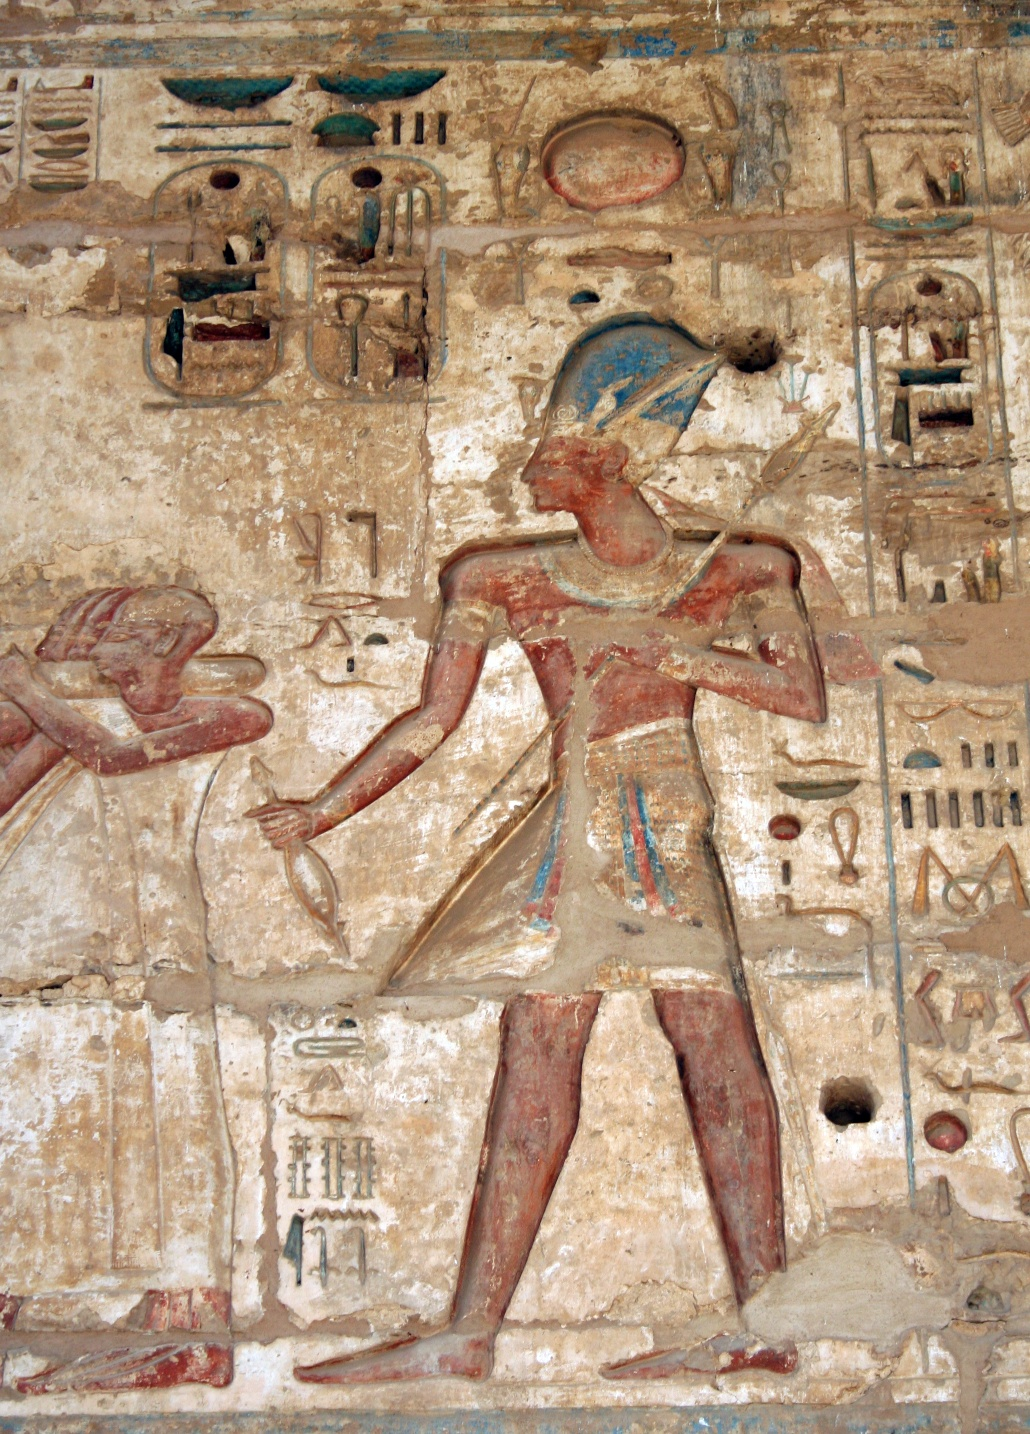 egyptian art analysis The great age of ancient egypt lasted ca 3000-1000 bc (see history of the  ancient middle east) for the most part, the style of egyptian art throughout this.